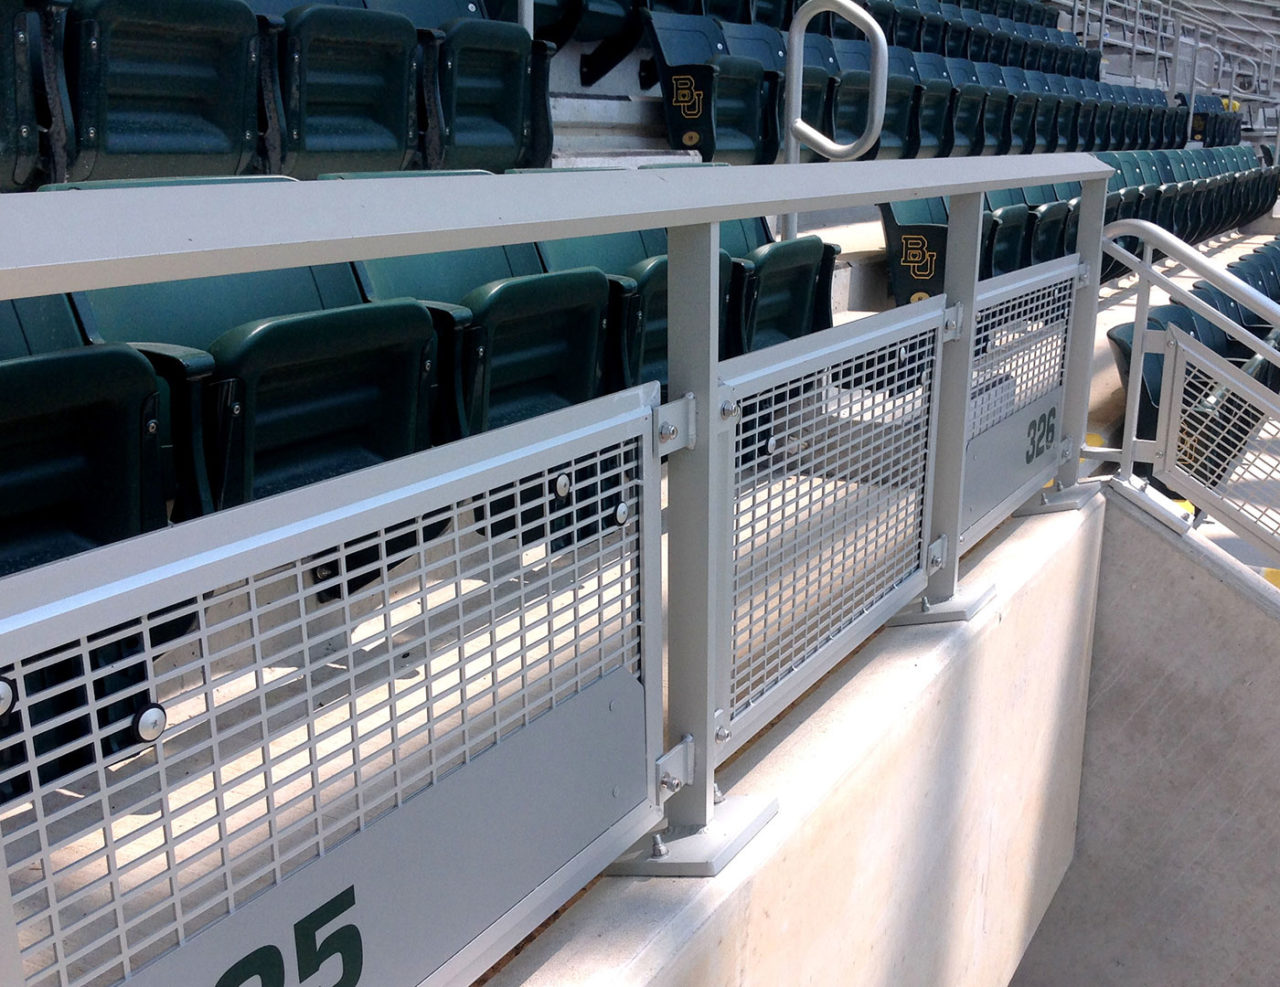 Gridguard aluminum perforated railing